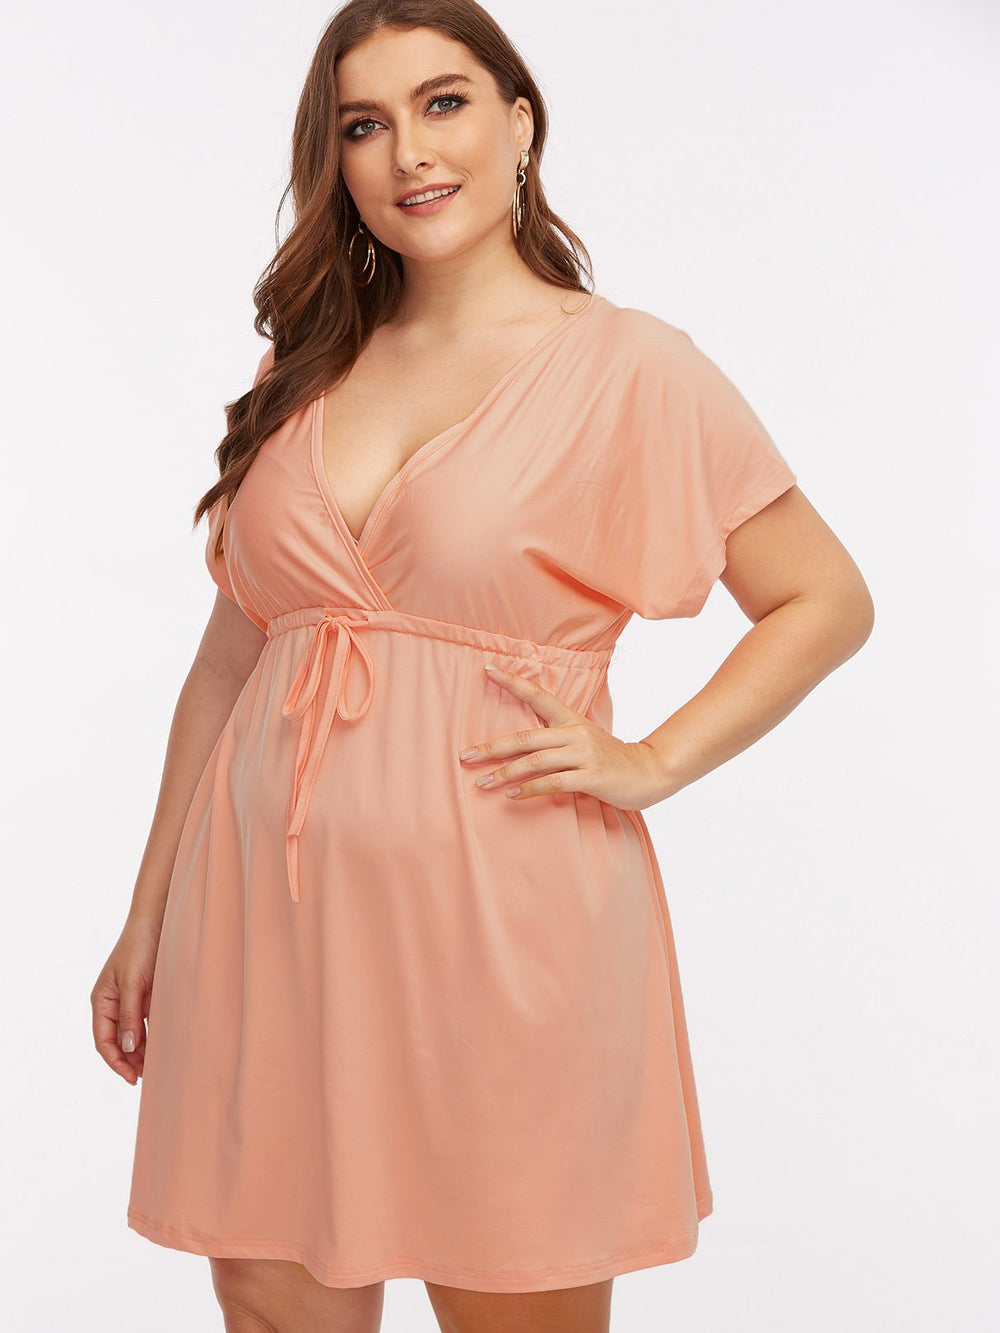 V-Neck Plain Short Sleeve Flounced Hem Light Pink Plus Size Dresses